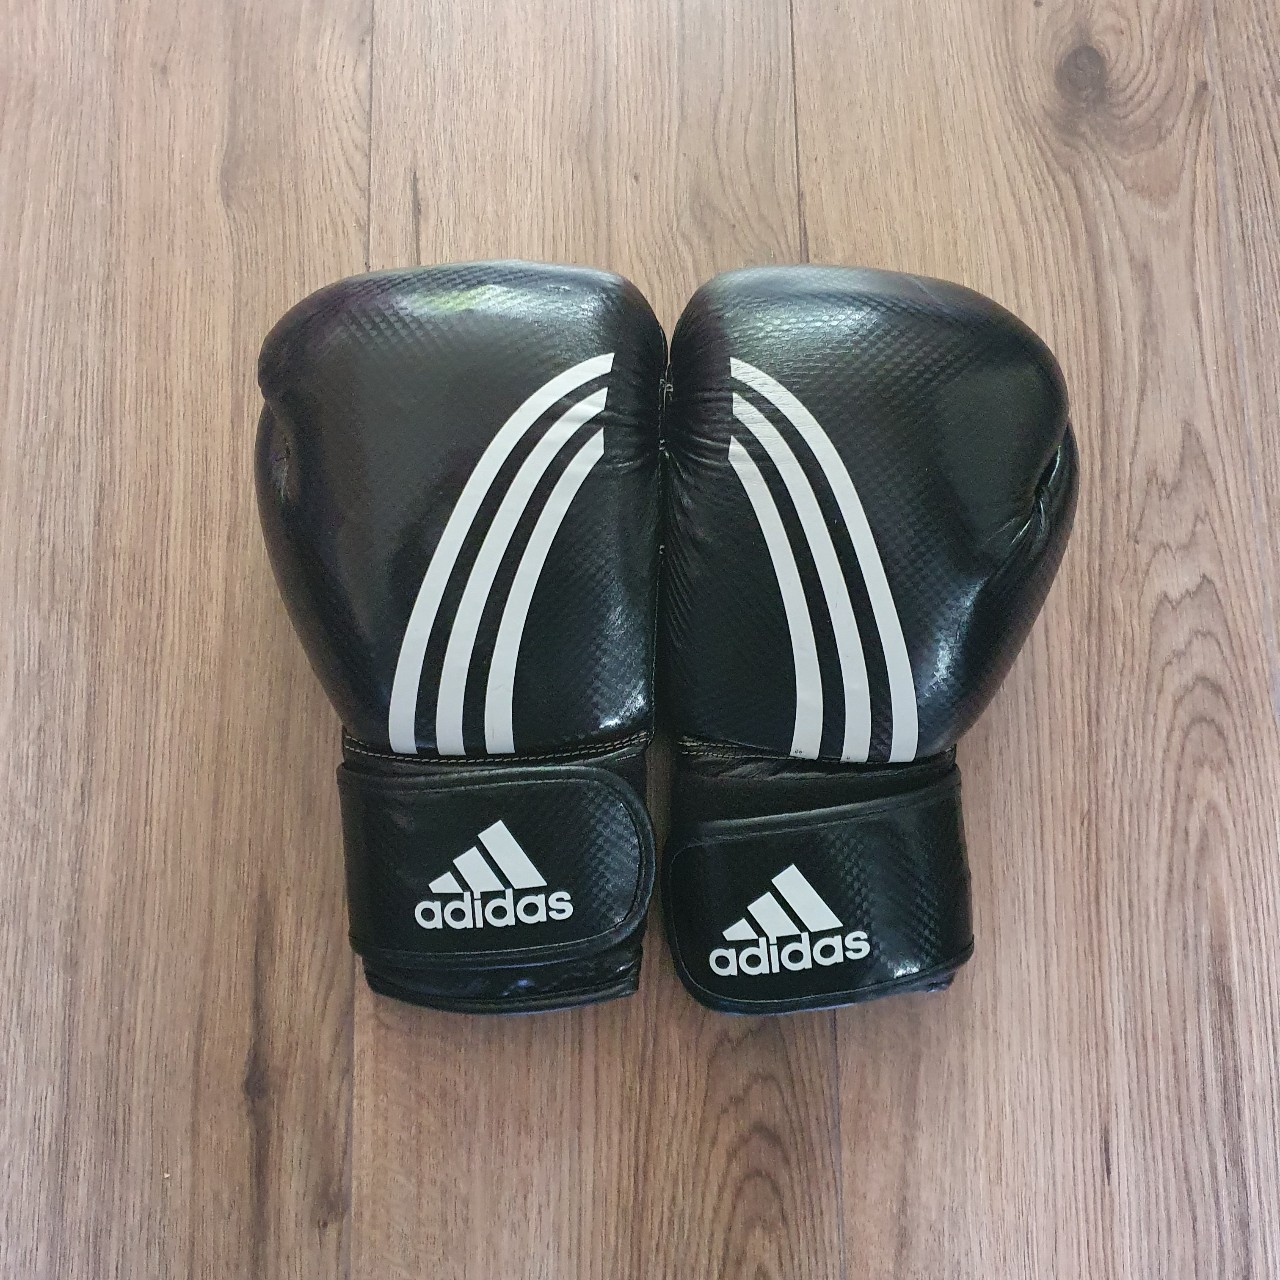 Black Adidas 14 ounce climacool boxing gloves...